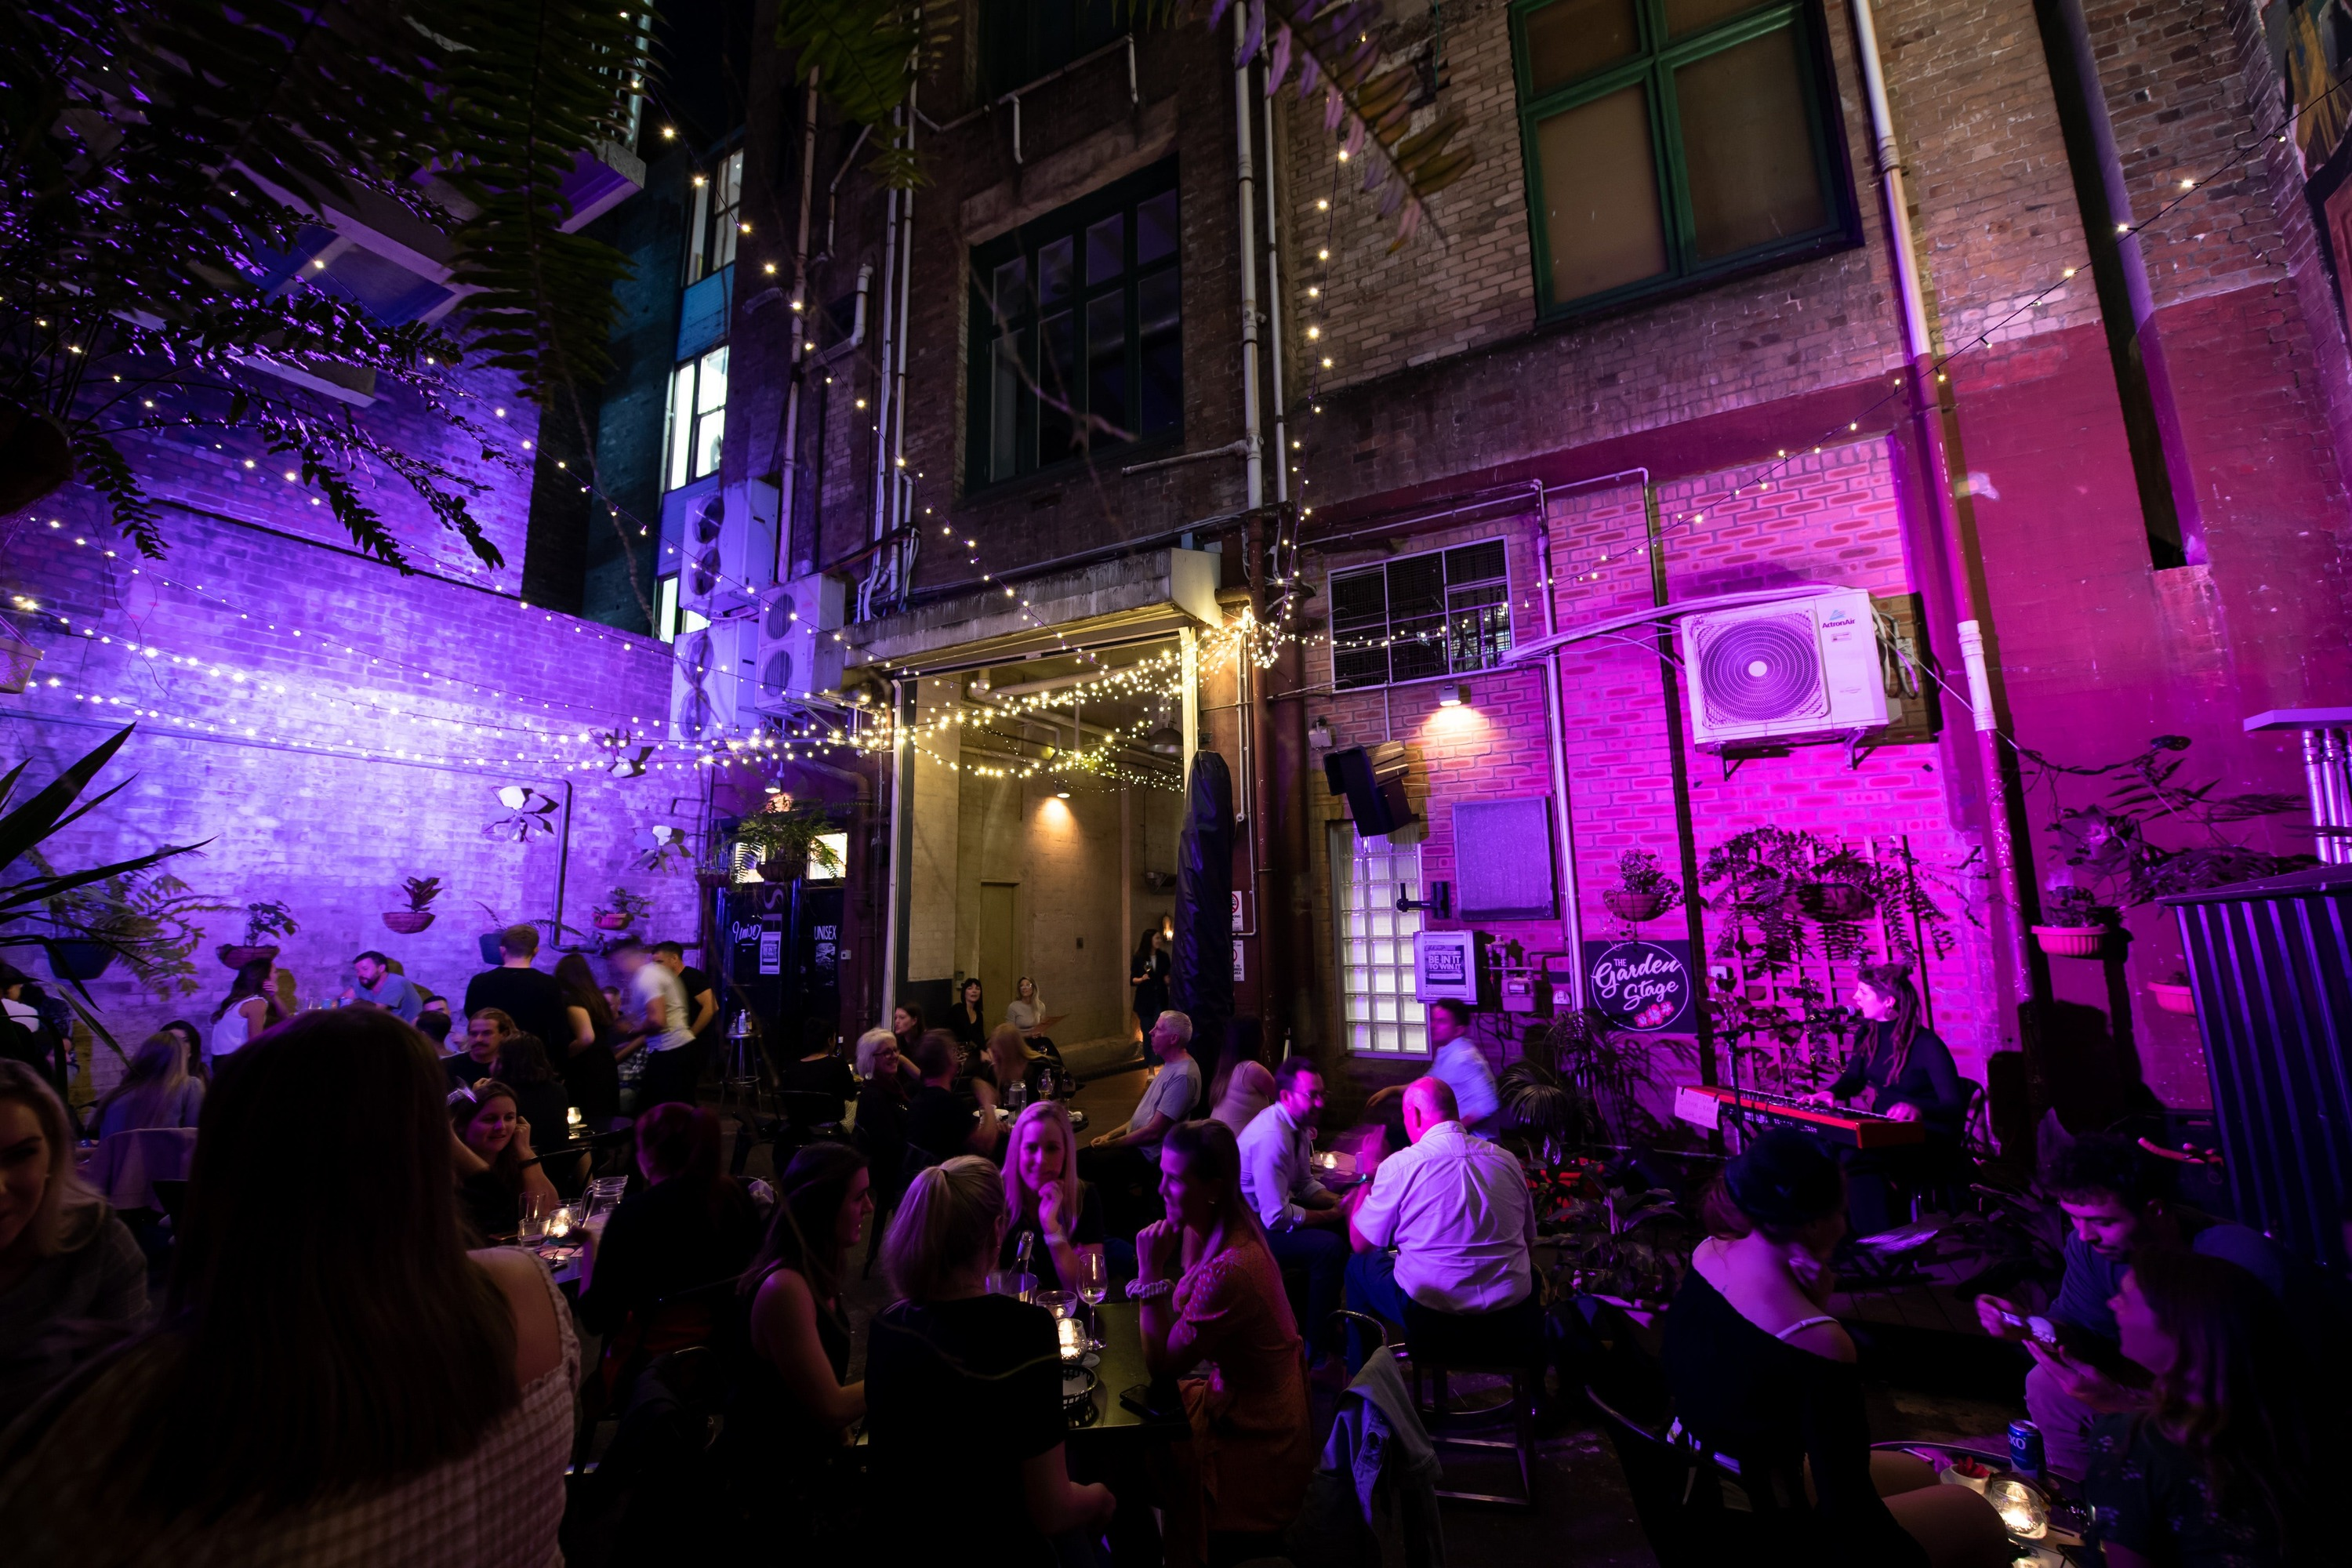 A purple-lit laneway scene with people sitting down eating and drinking